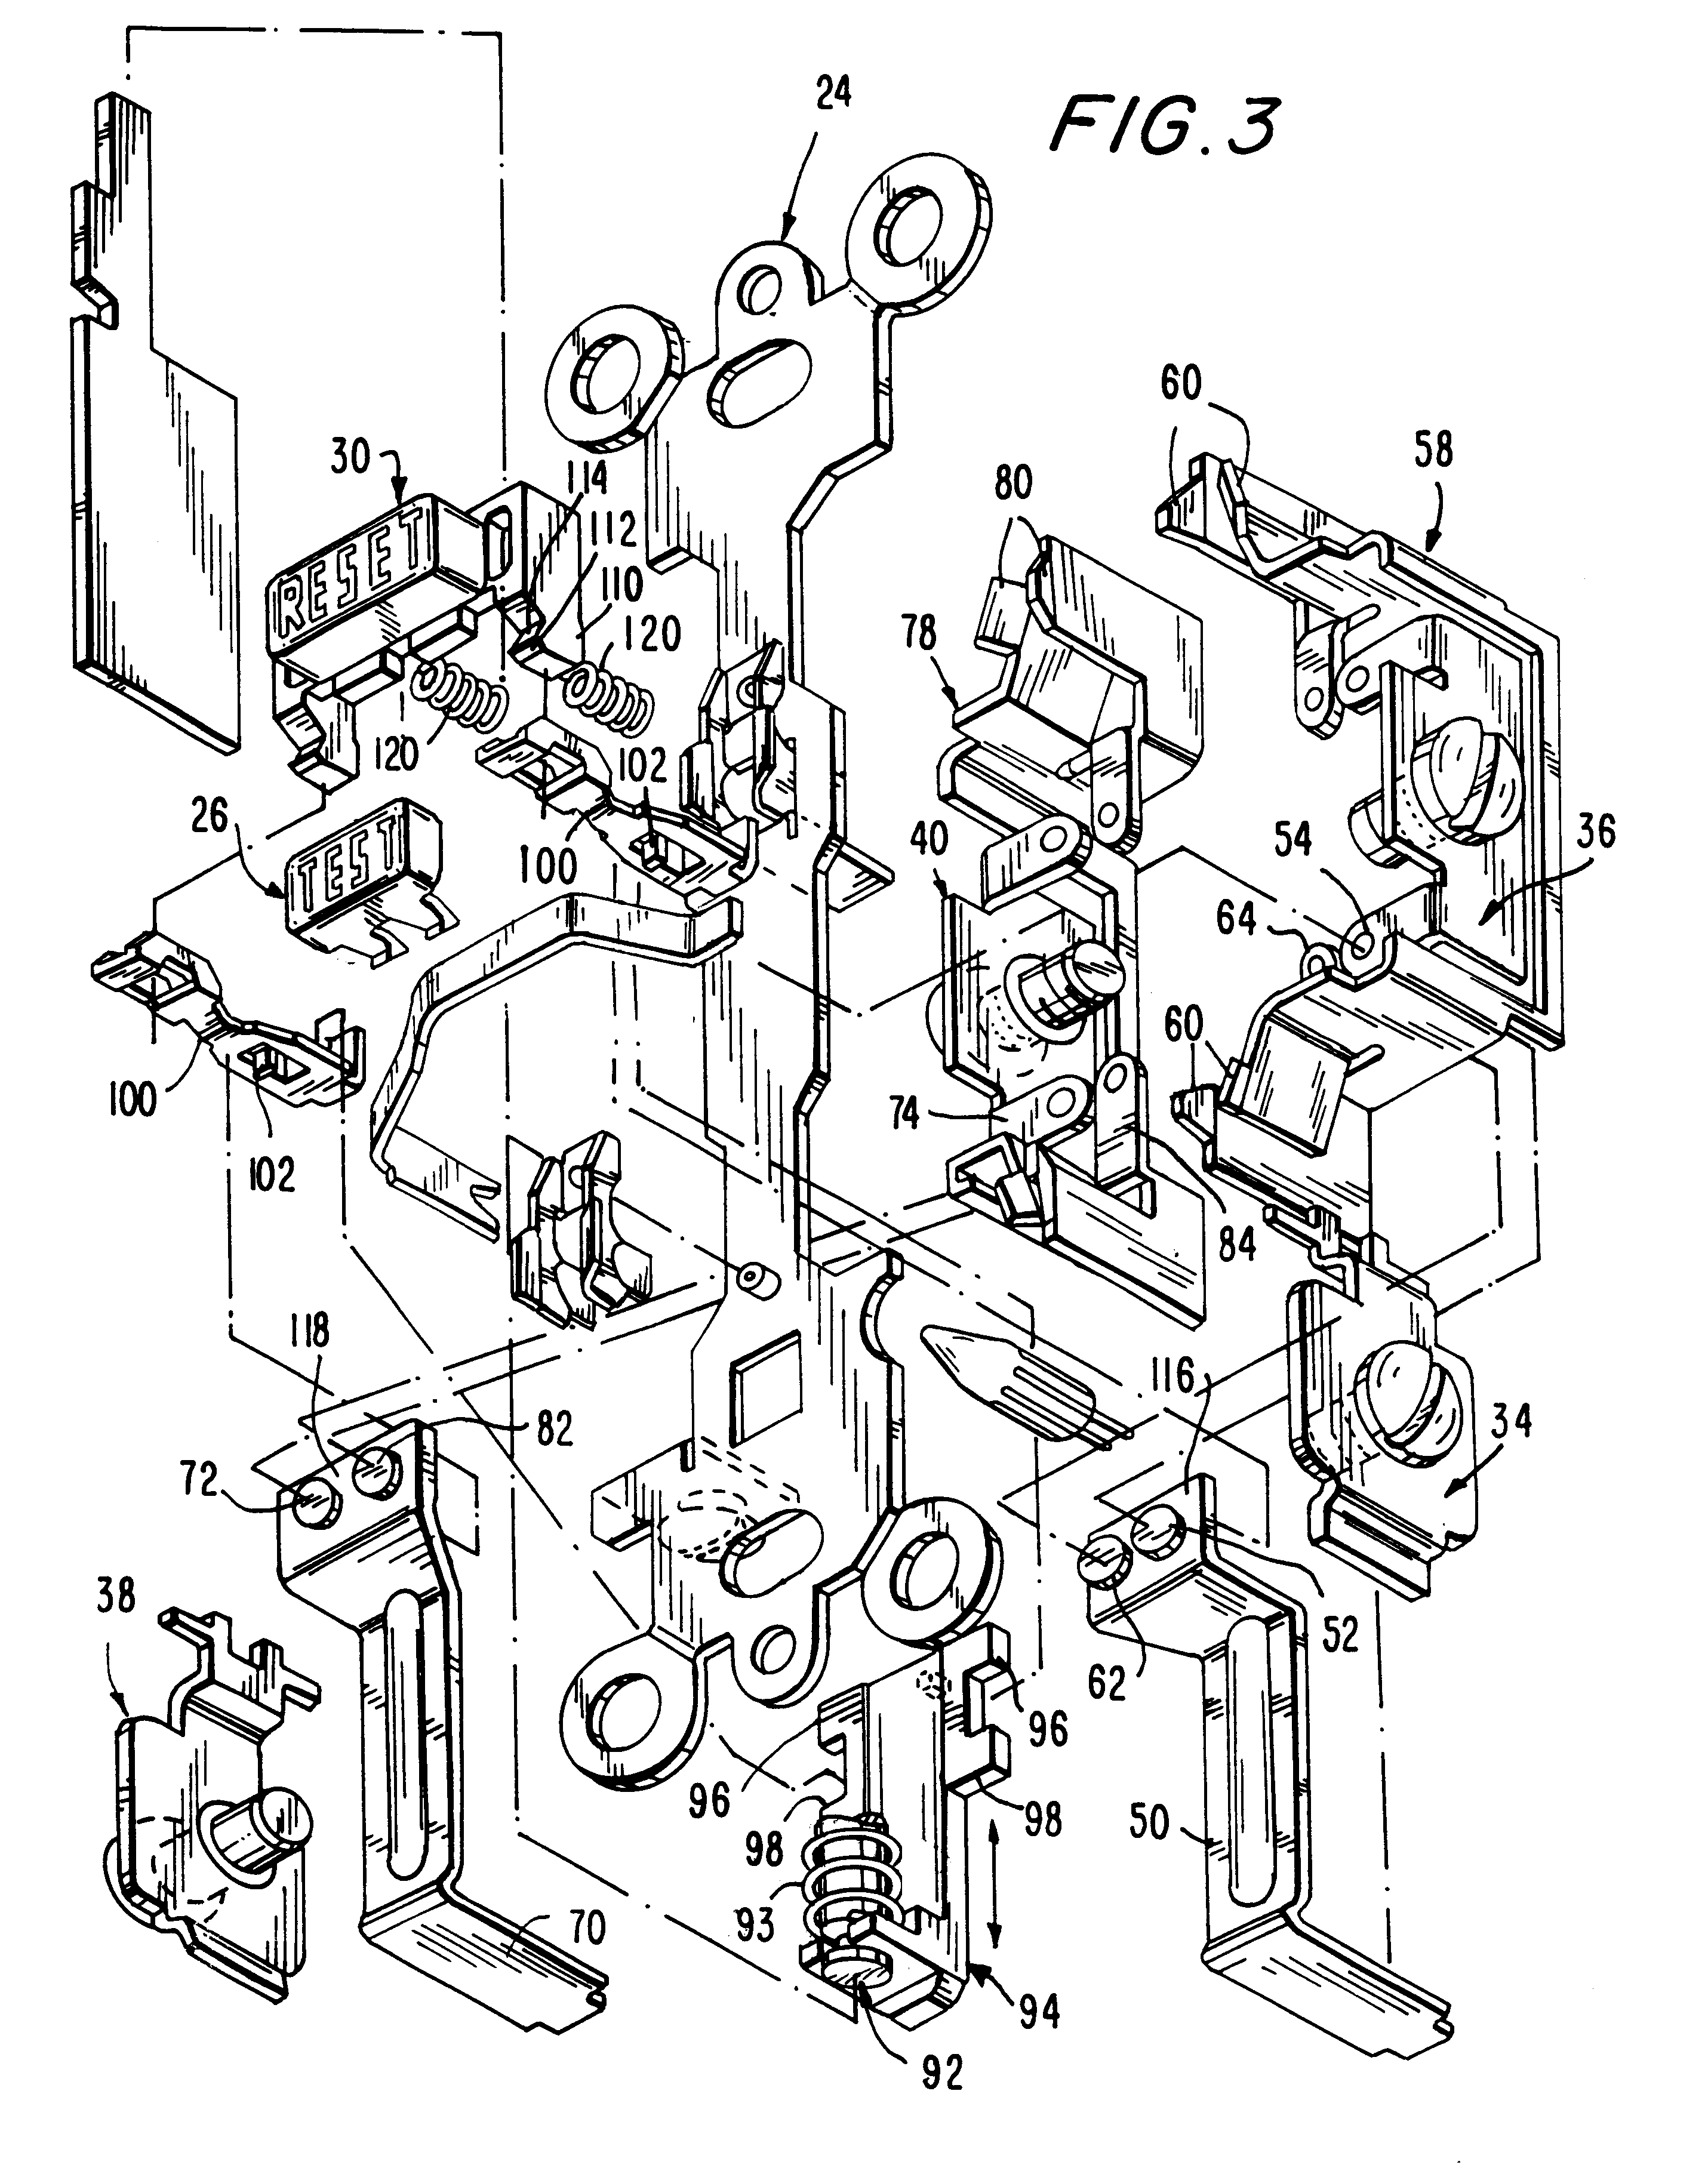 US06246558 20010612 D00003 patent us6246558 circuit interrupting device with reverse wiring,Wiring A Gfci Circuit